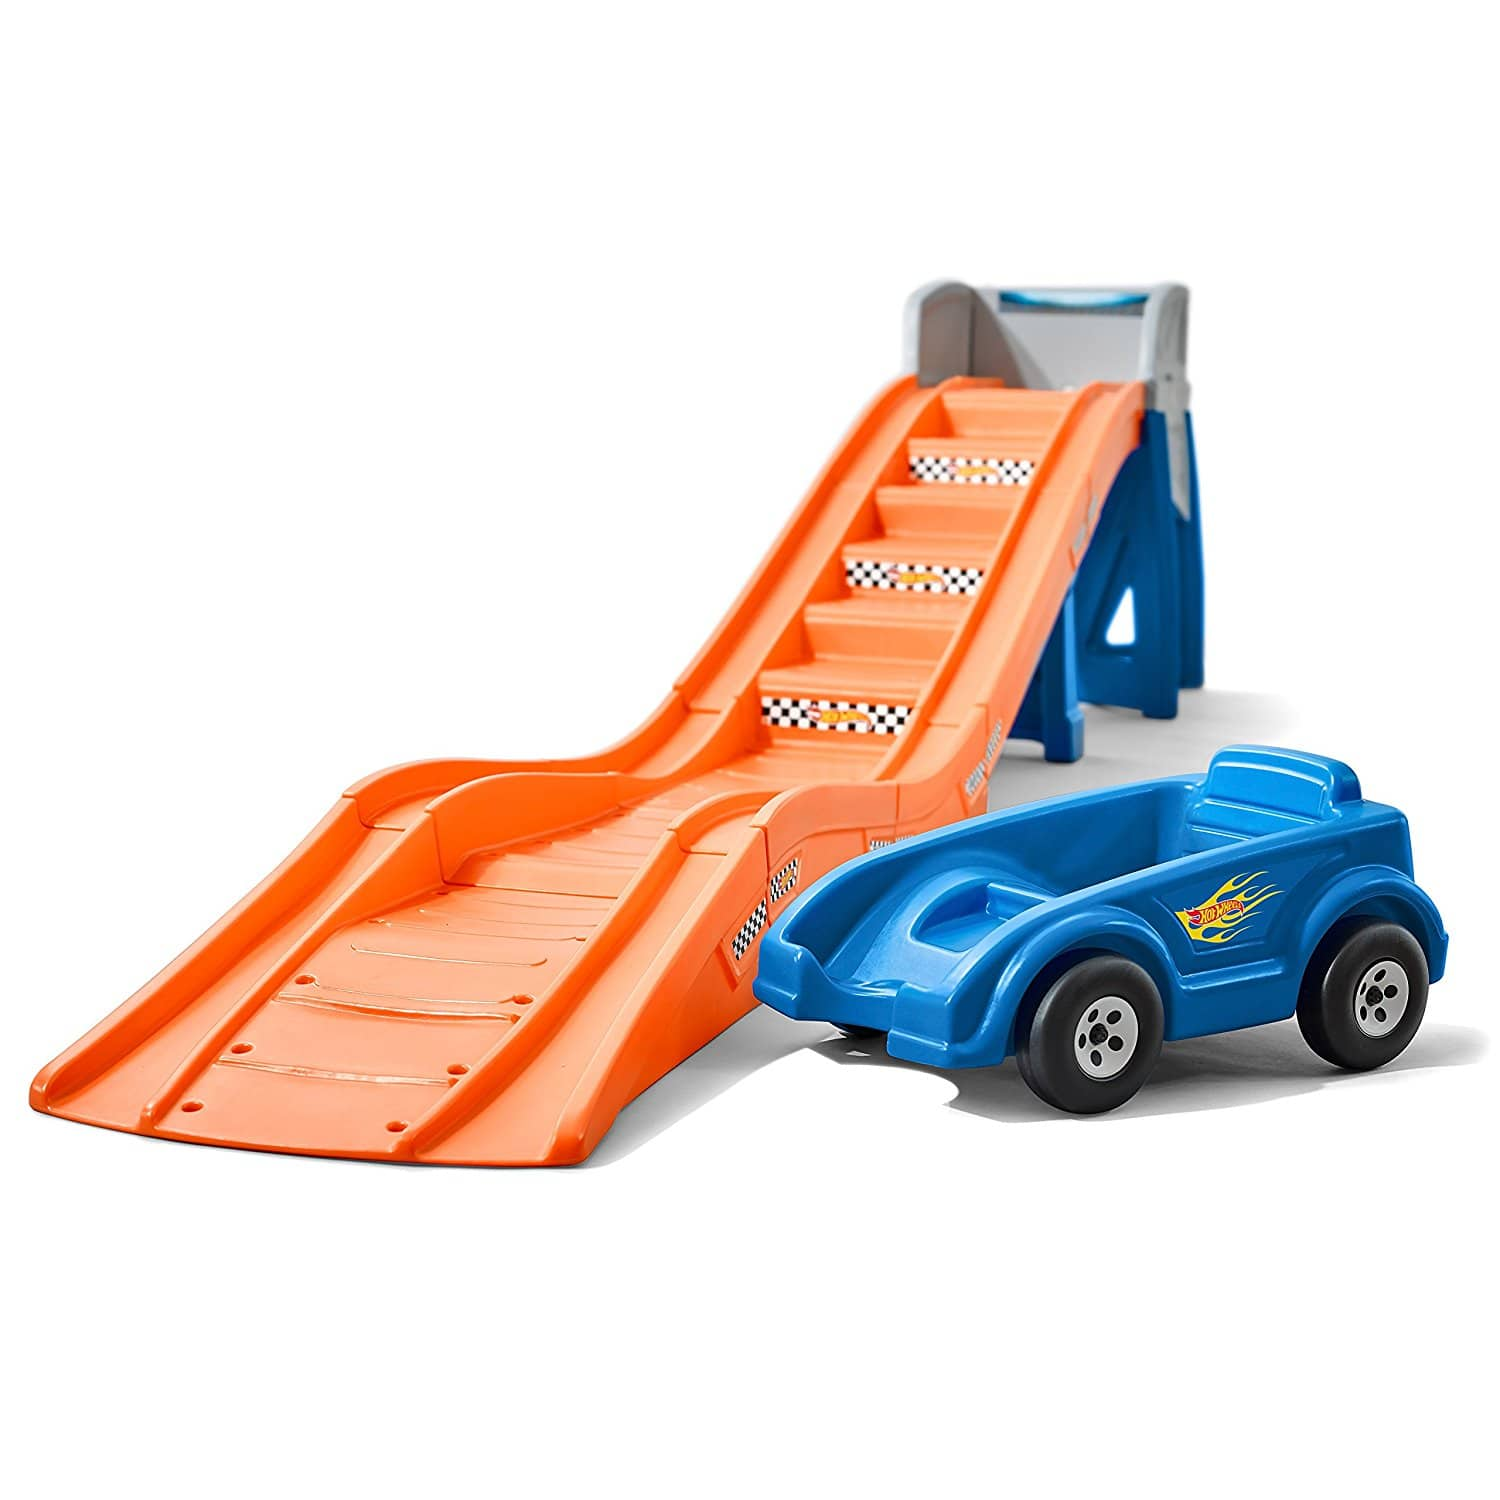 "Step2 Hot Wheels Extreme Thrill Ride On Coaster with 14 feet of Easy-Step Track and a 30"" High Platform. $190.47 (Pick up @ Walmart)"